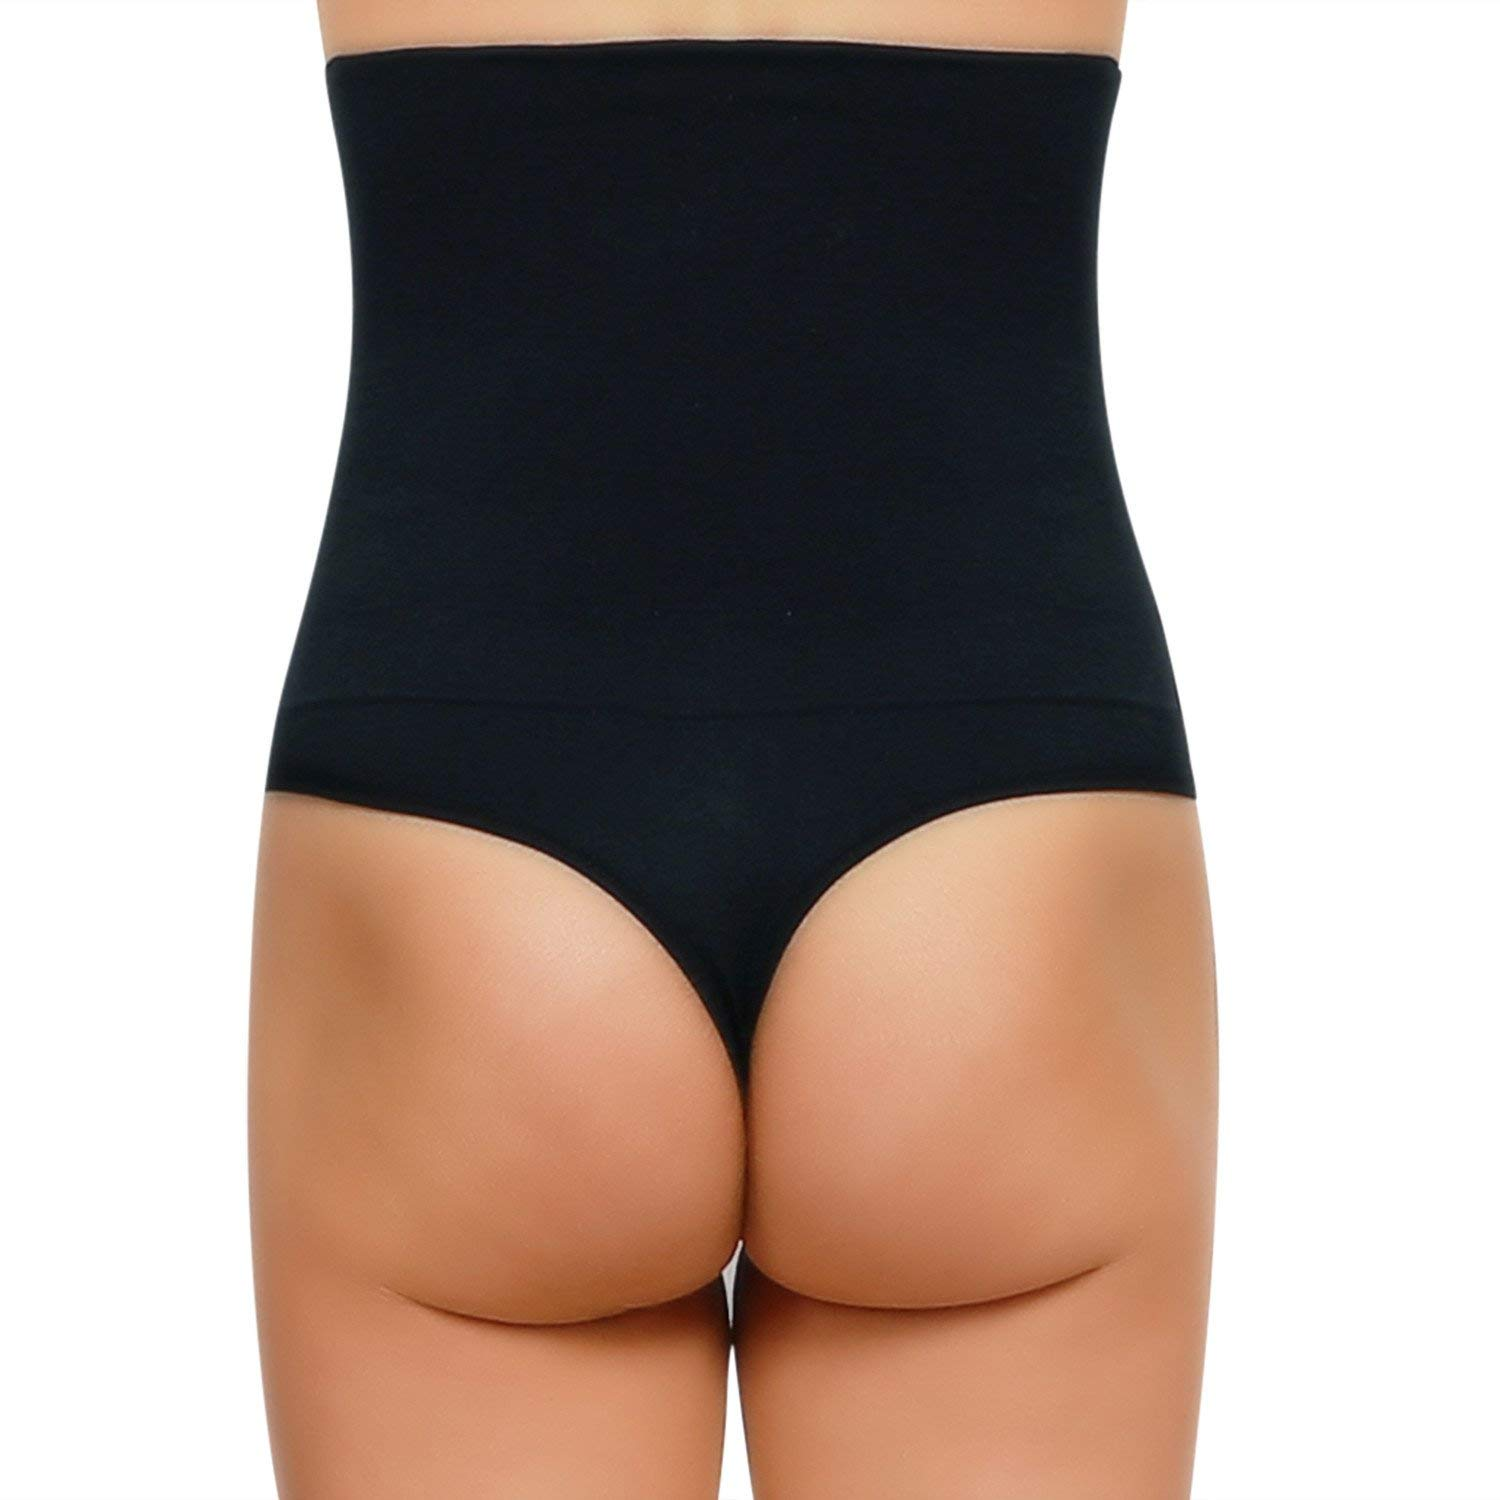 Save Up to 70% for Tummy Control Shapewear Thong!